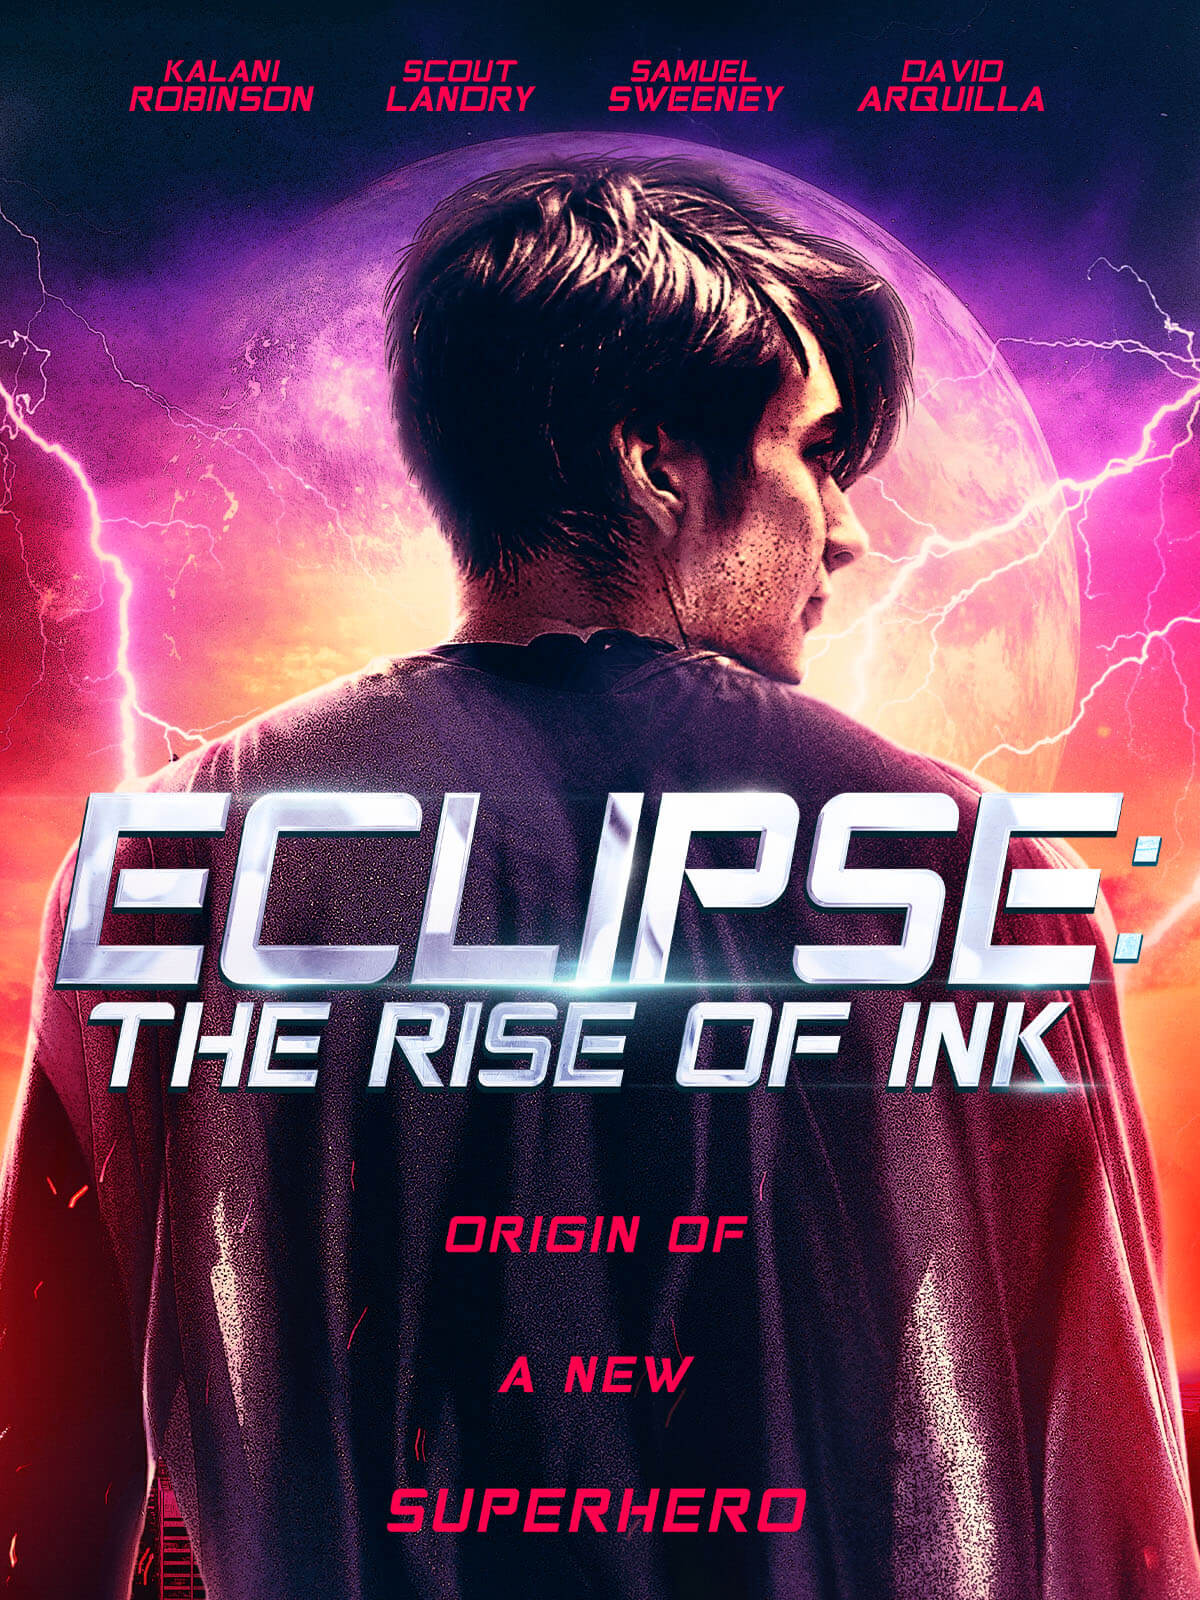 Eclipse The Rise of Ink 1200x1600 1 ECLIPSE: THE RISE OF INK